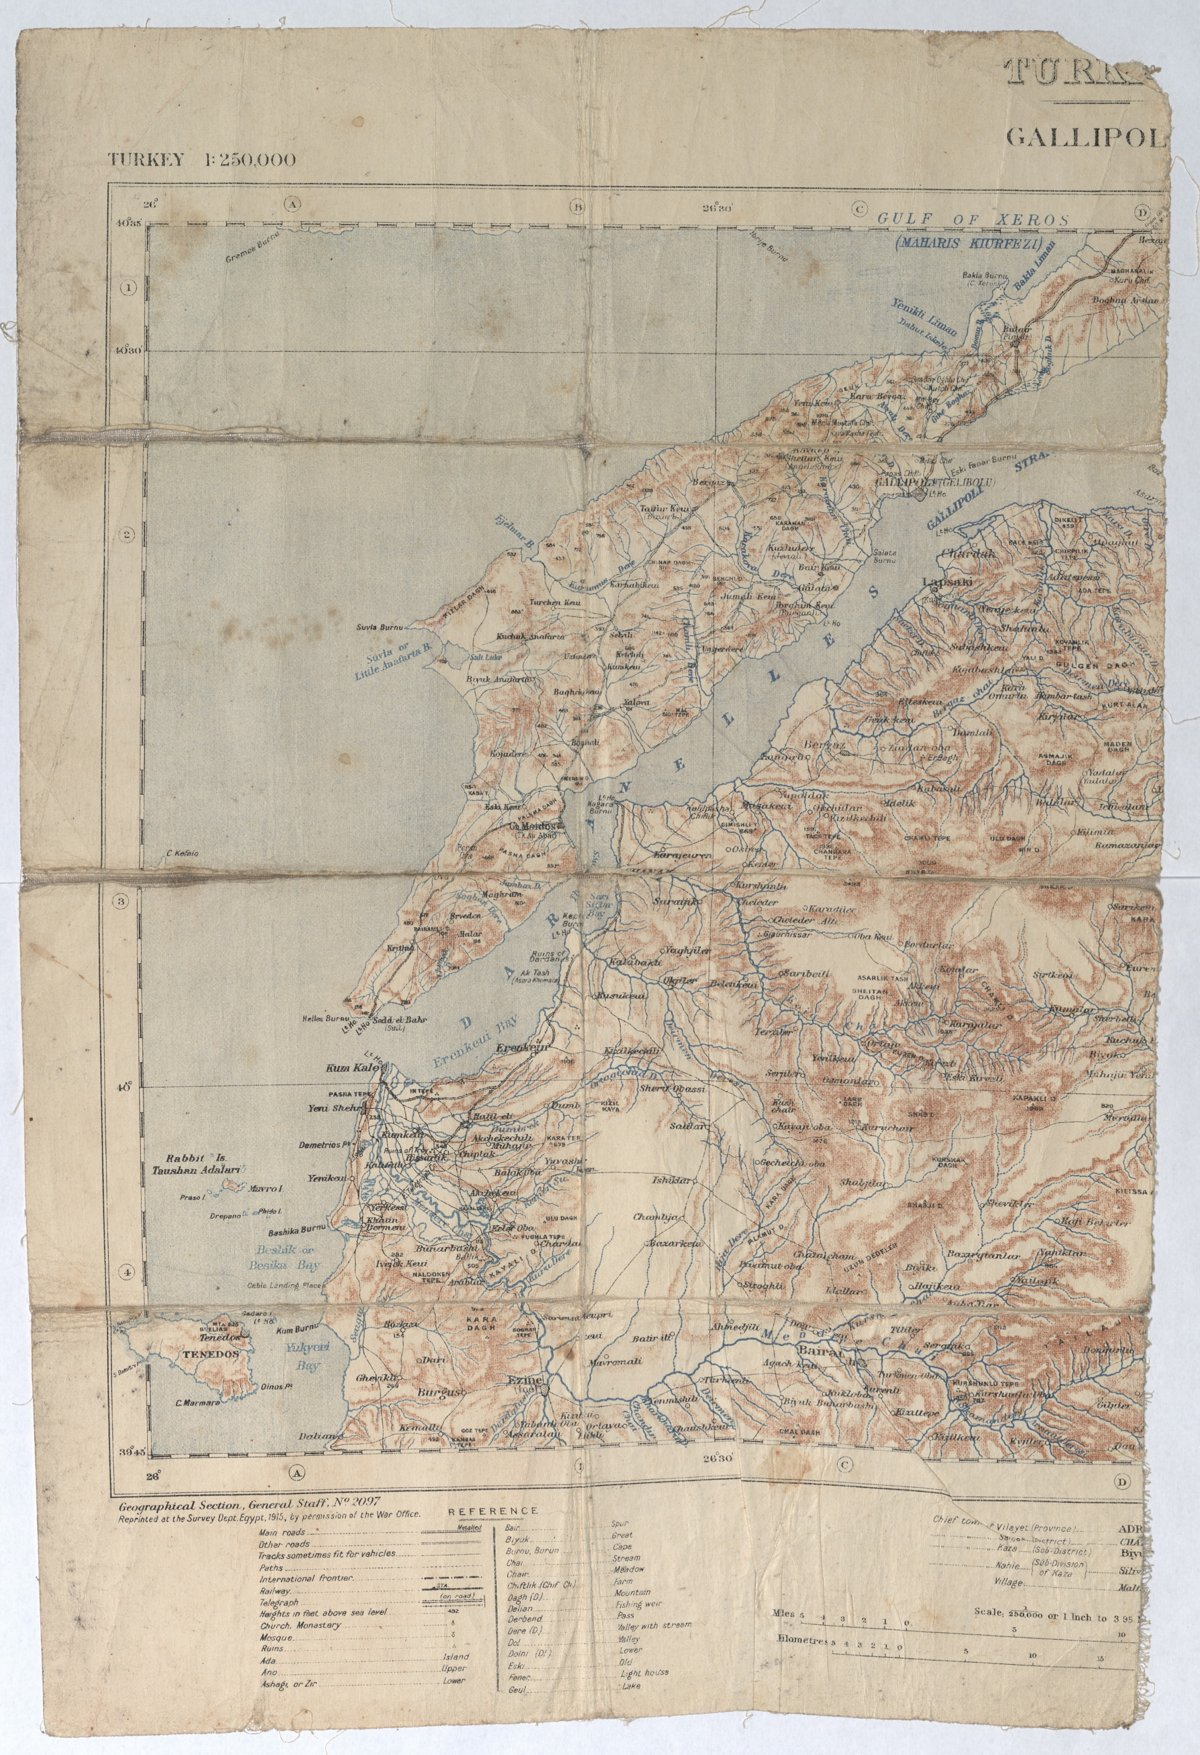 Map torn in half, showing the site of the Gallipoli campaign.